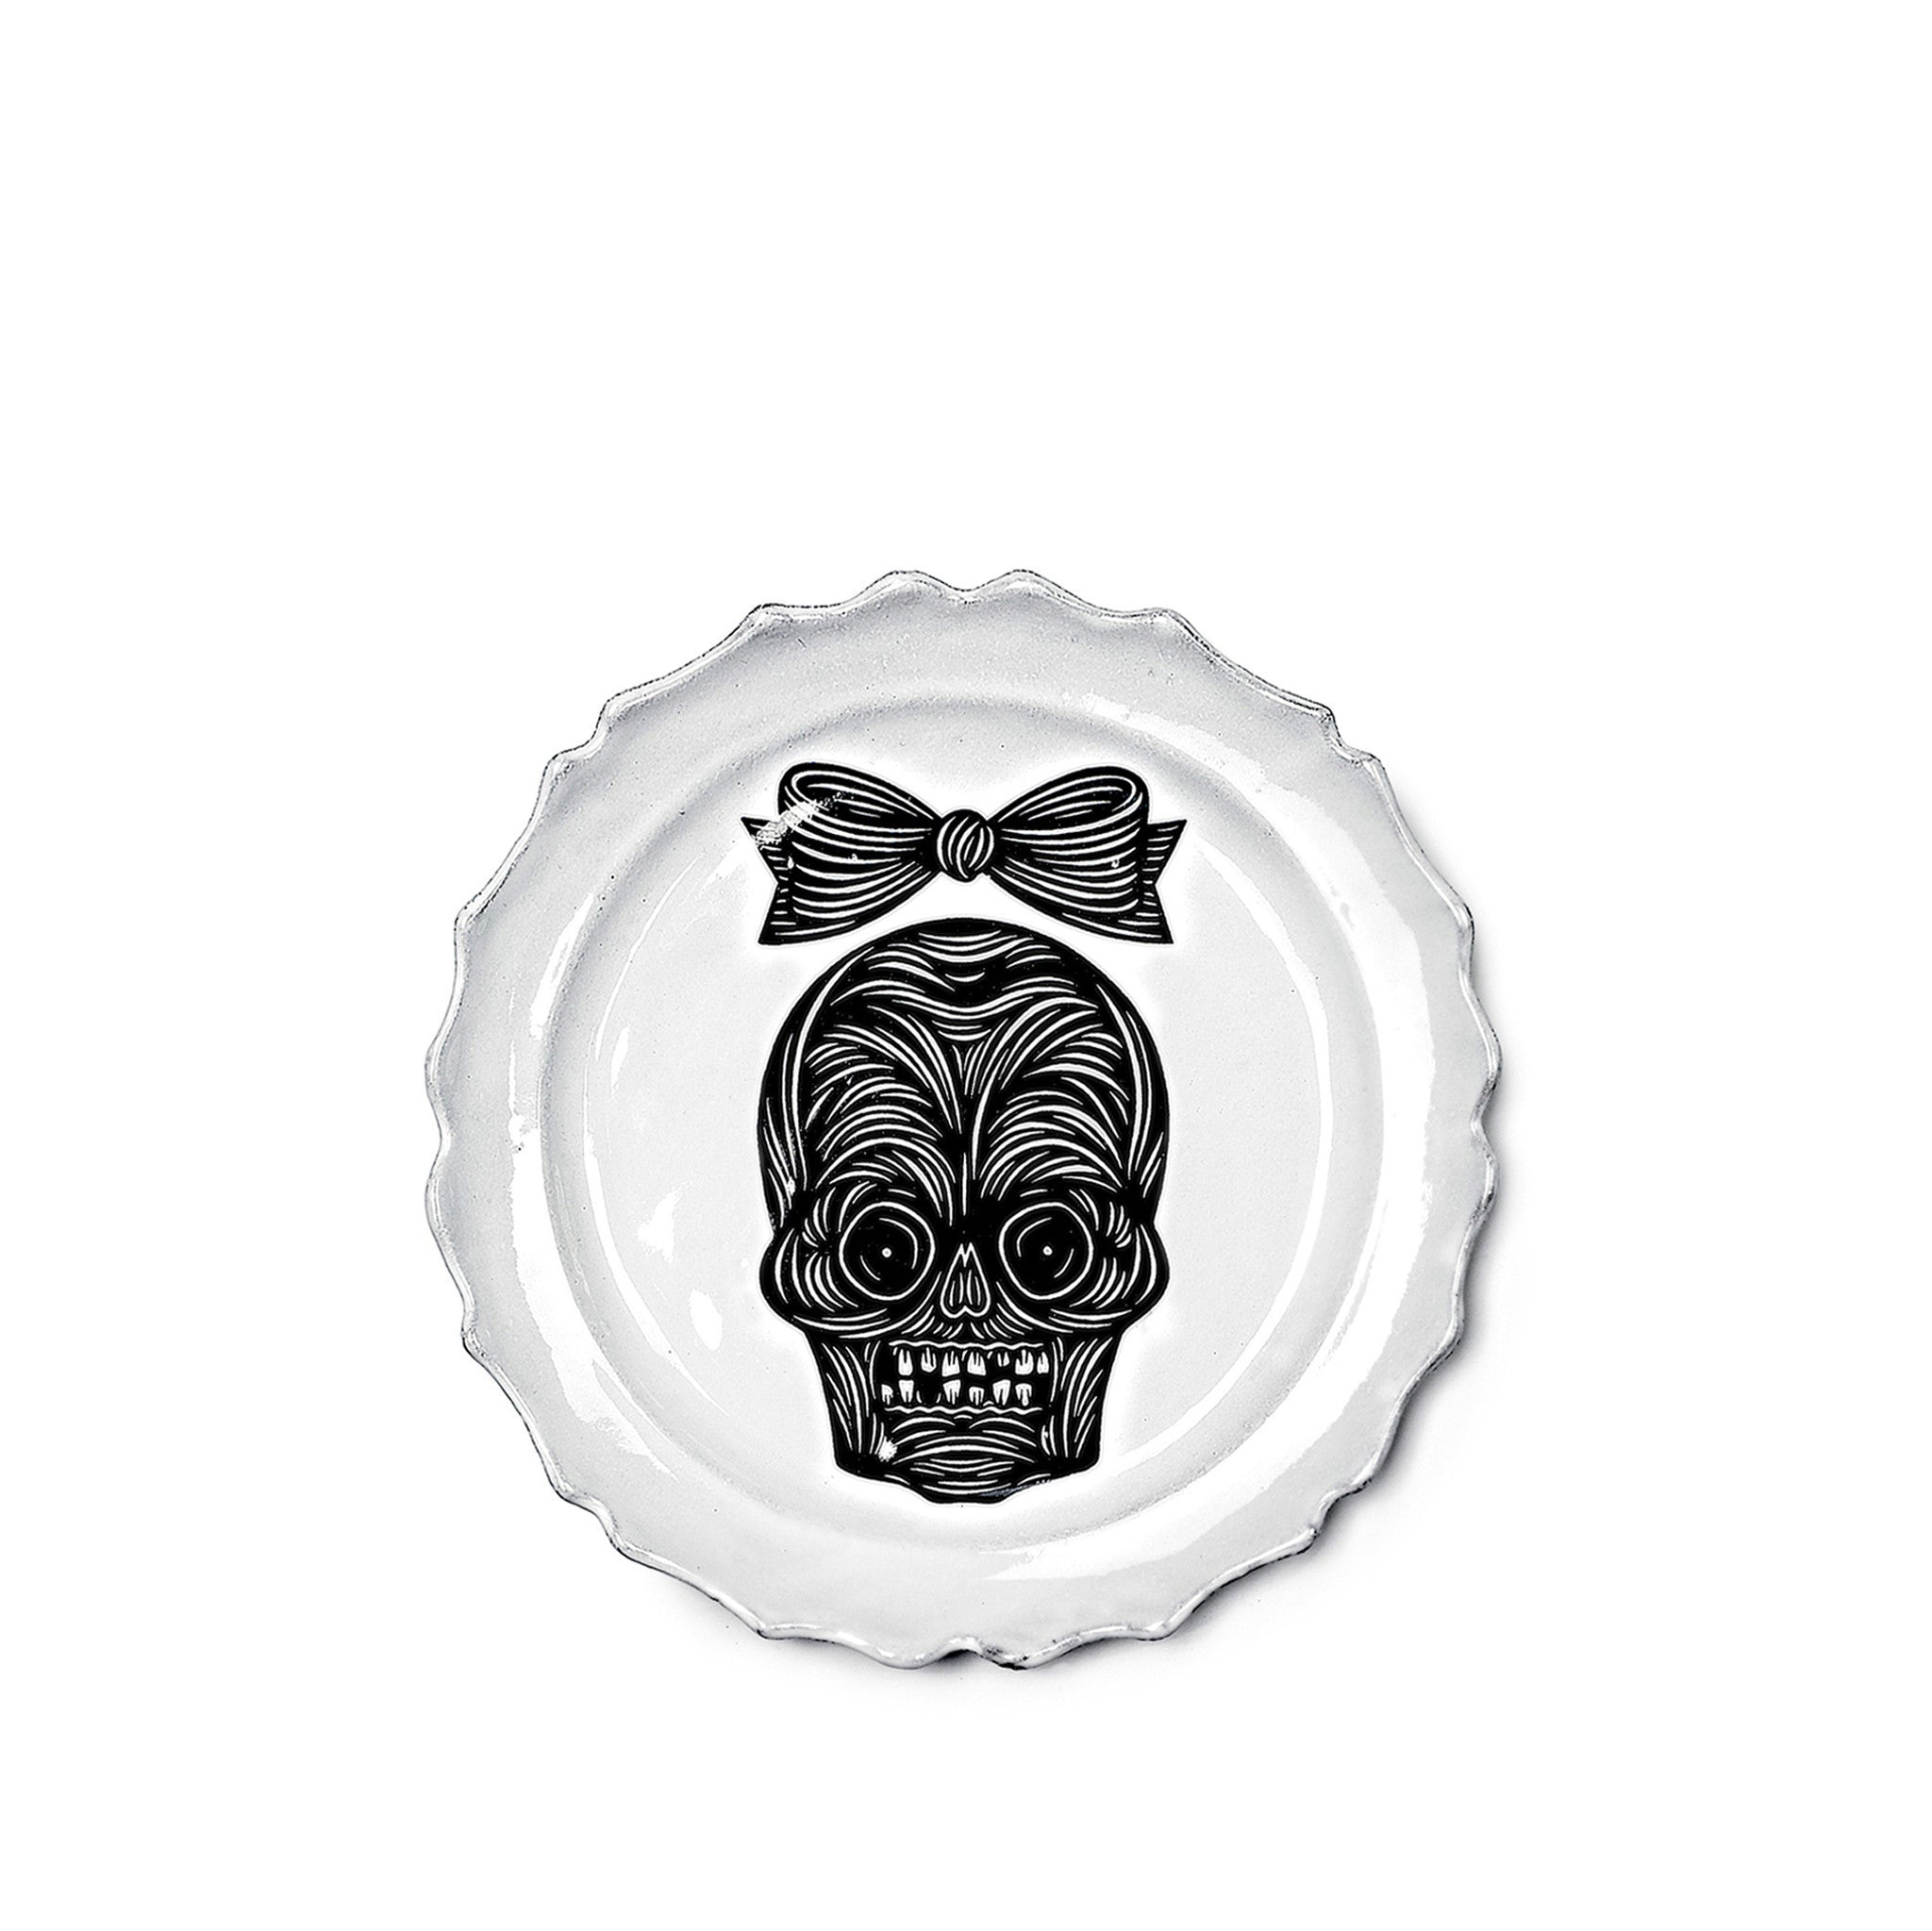 Female Skull Dinner Plate by Astier de Villatte